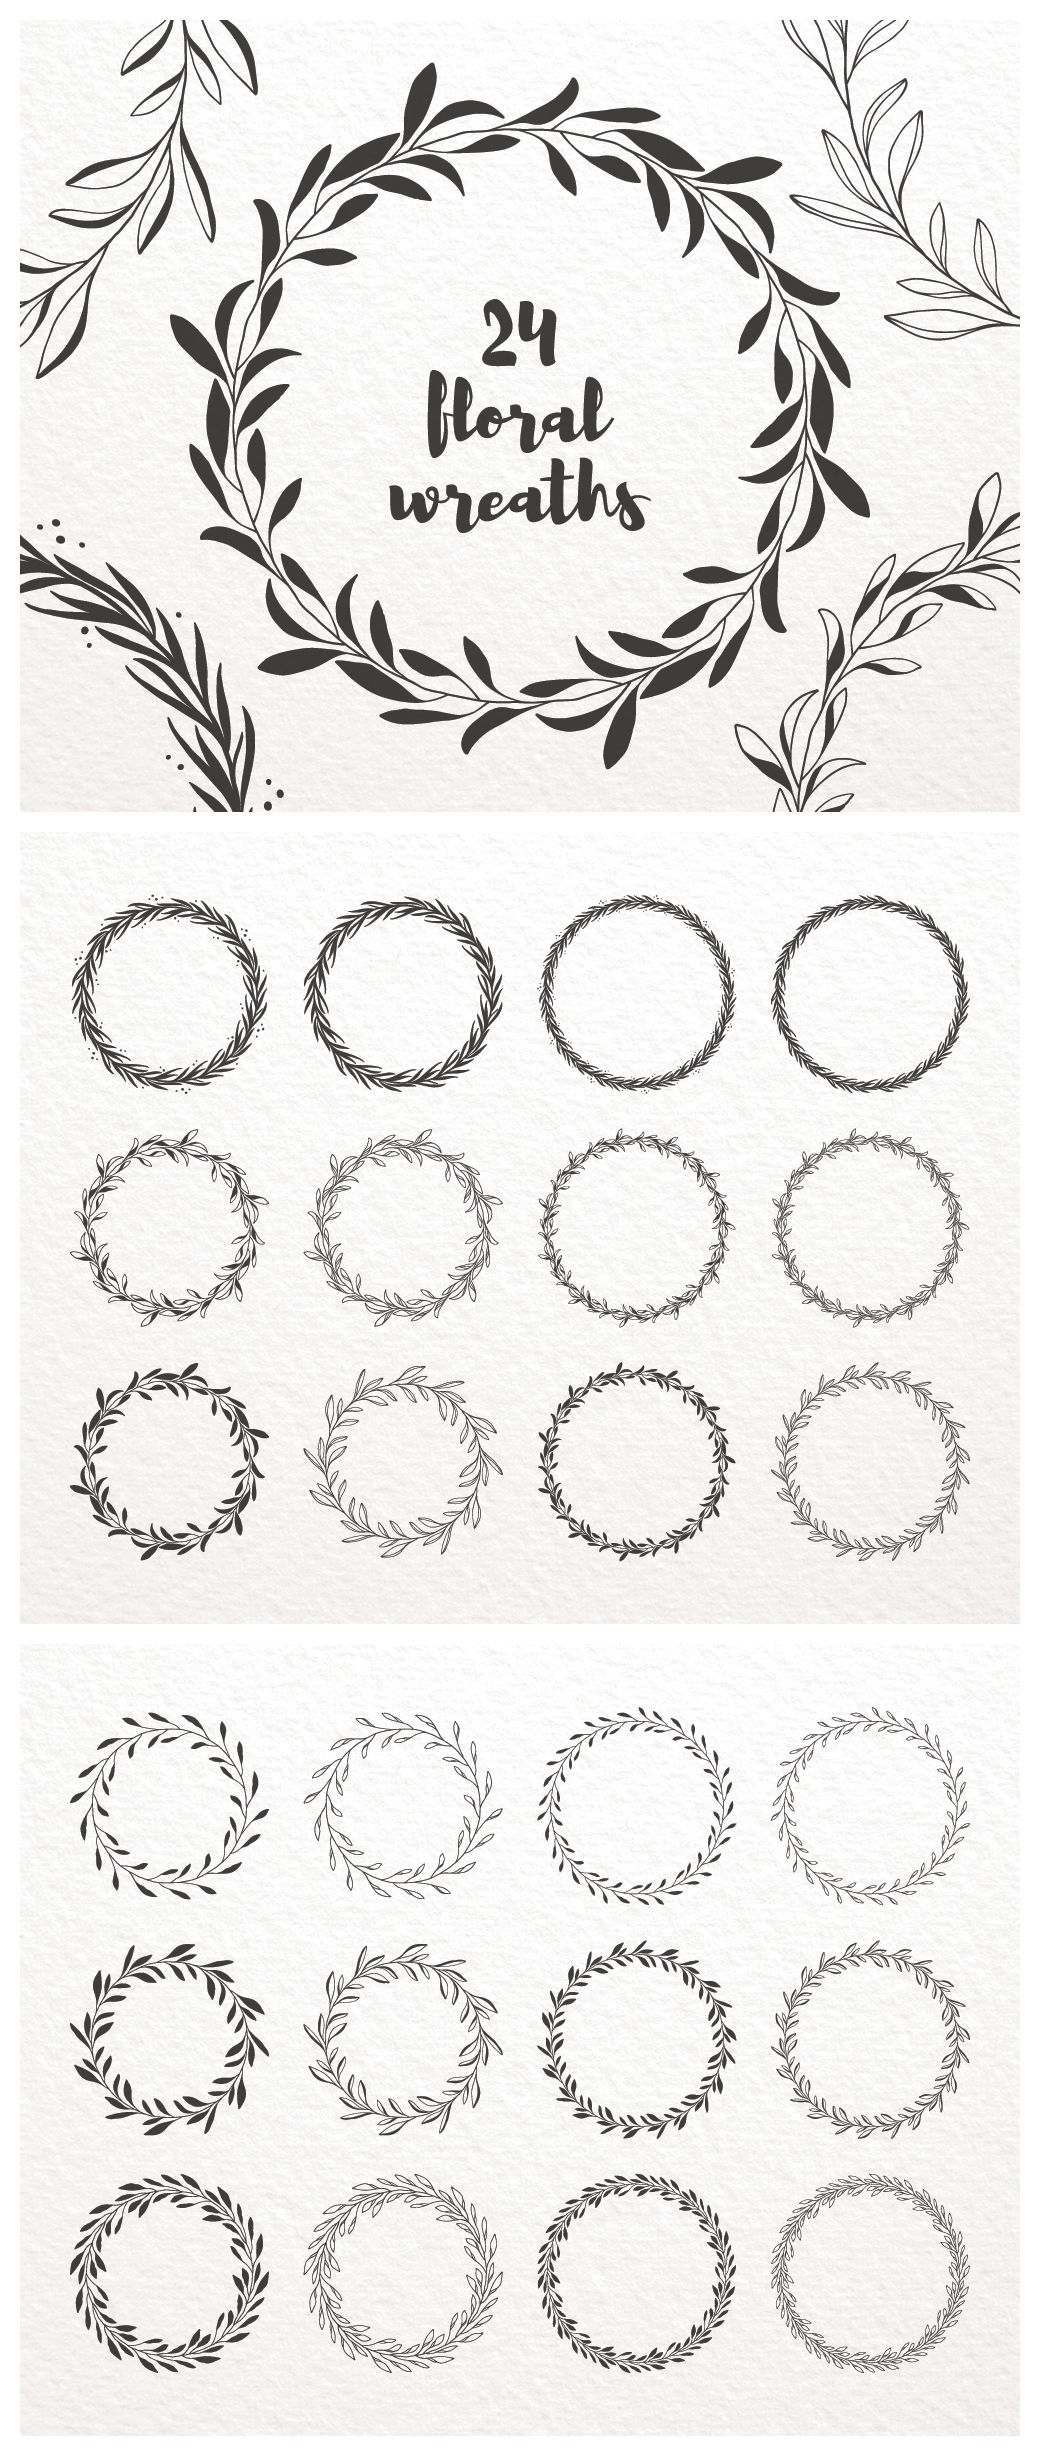 Floral Wreath Clip Art Hand Drawn Decorative Round Frames Etsy Flower Drawing Design Flower Wreath Illustration Flower Drawing